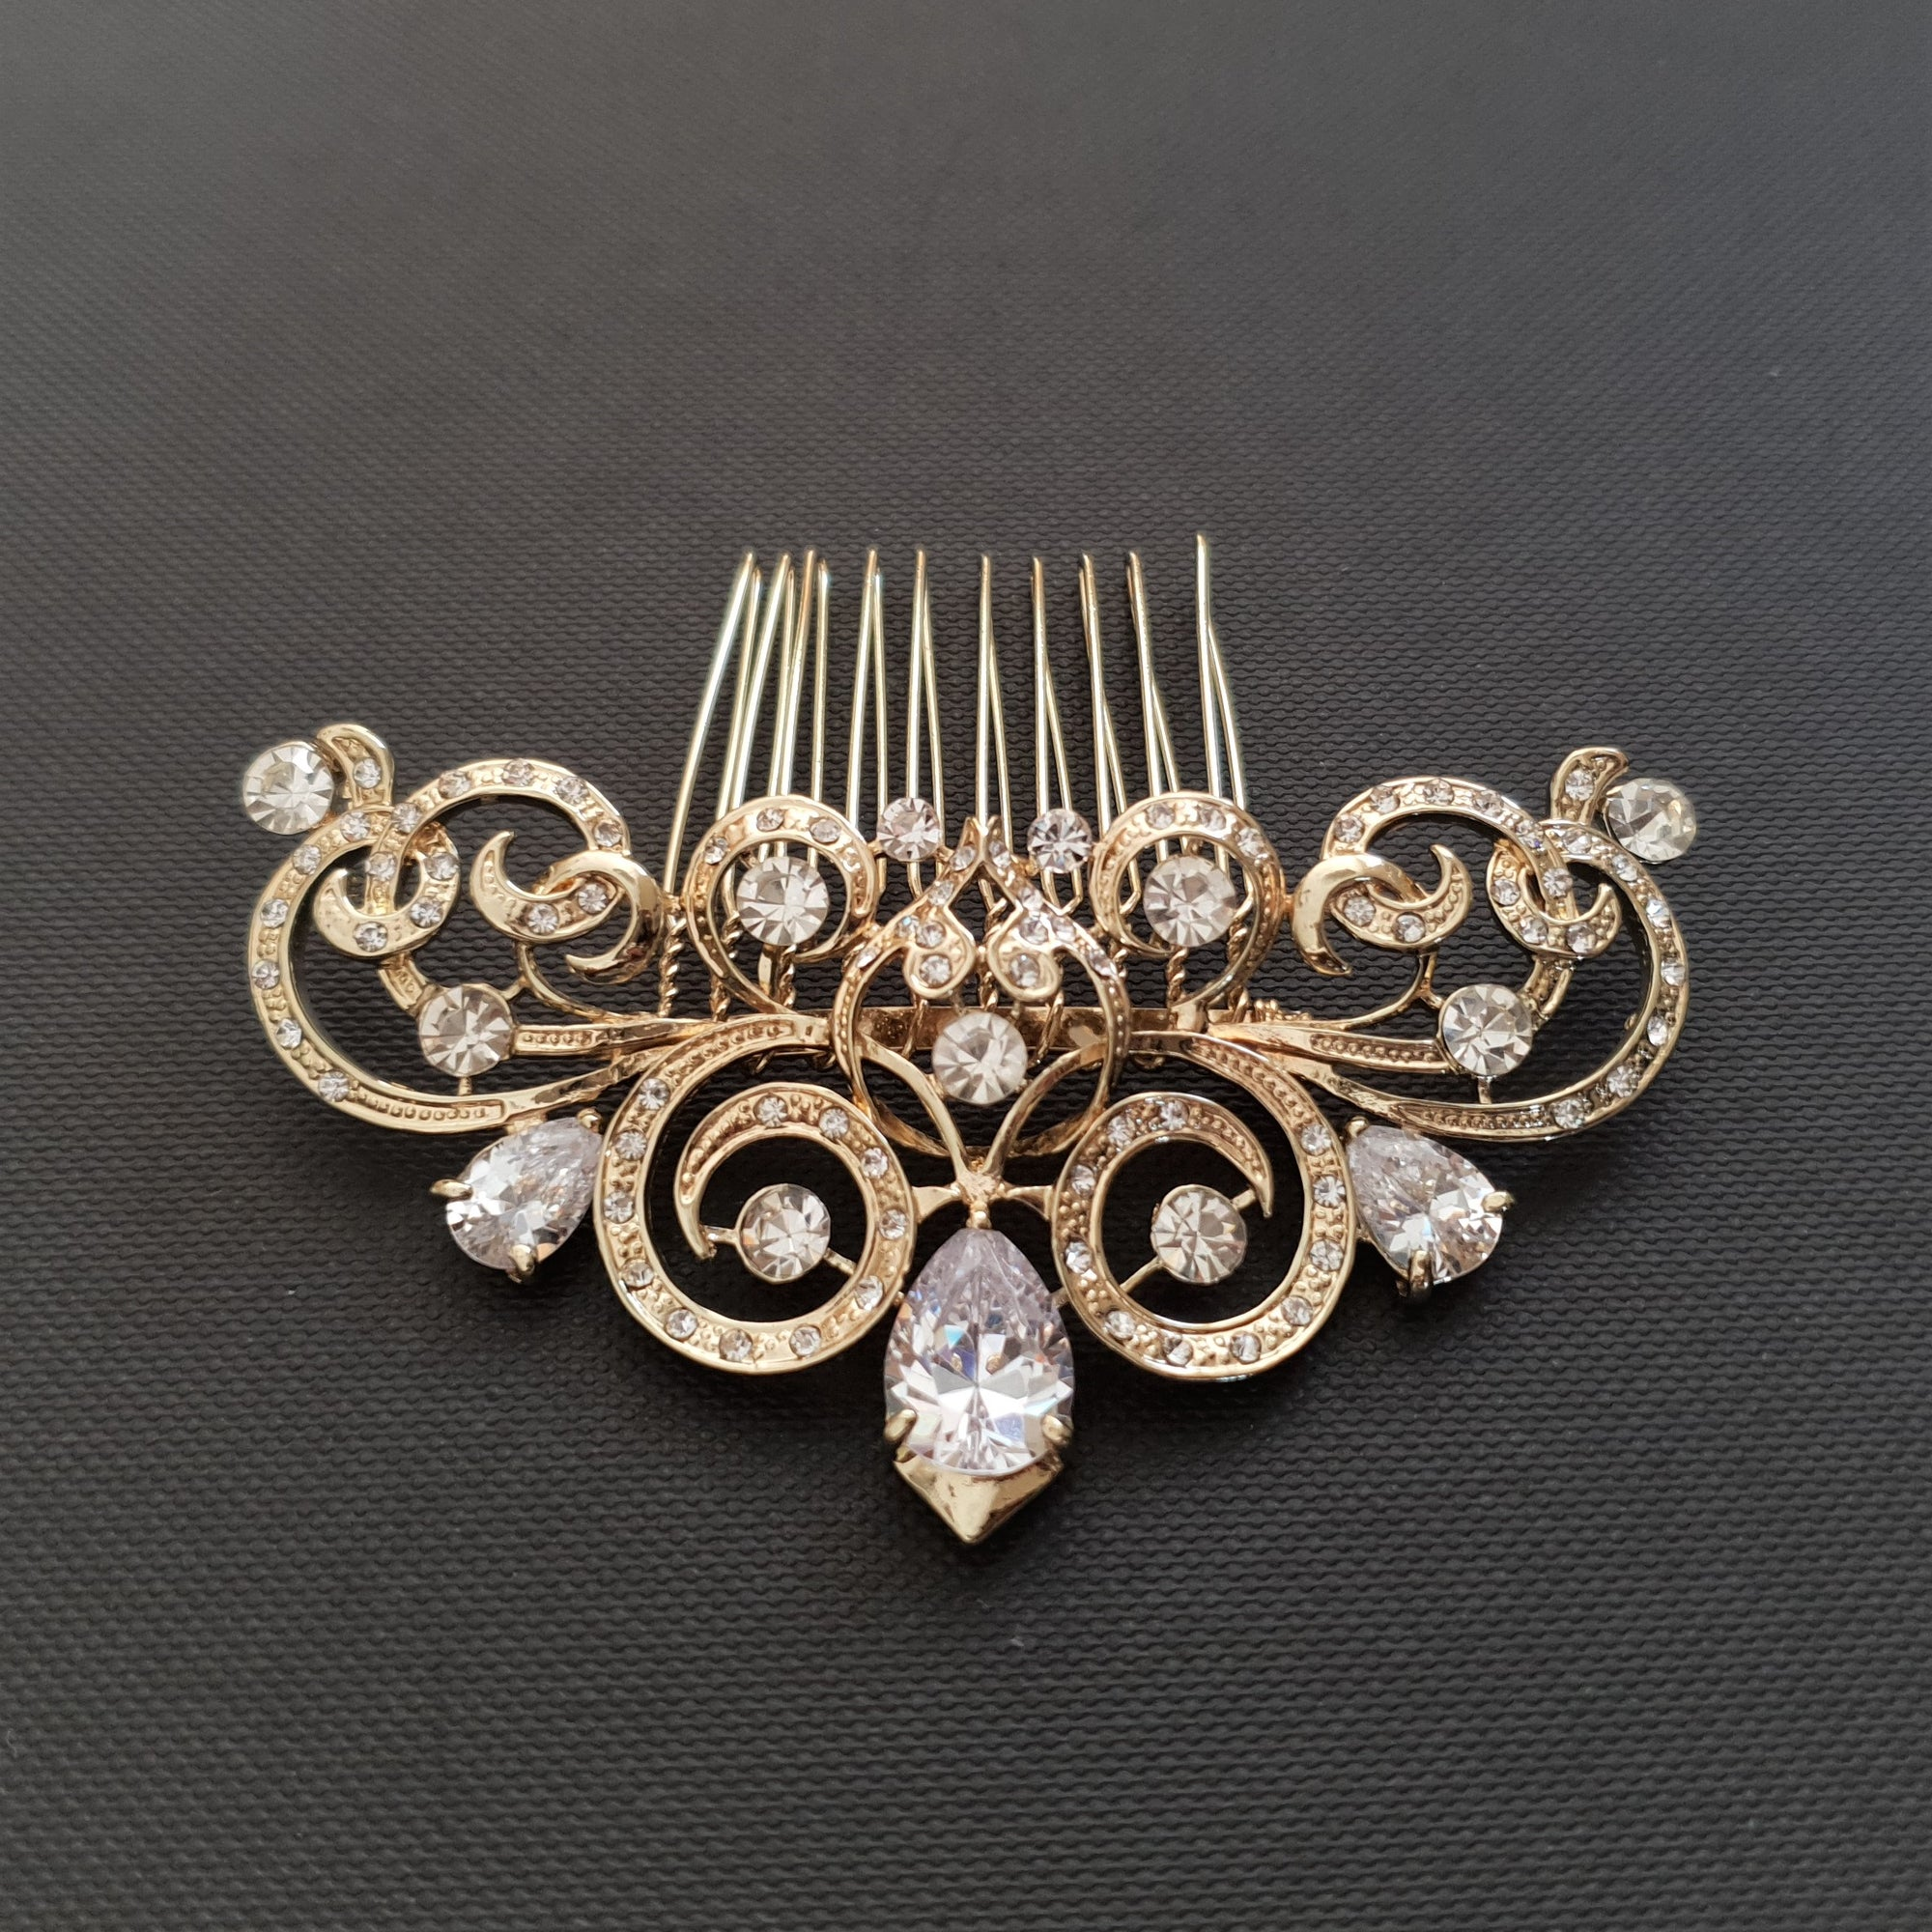 Decorative Victorian Style Bridal Hair Comb in Gold-Agatha